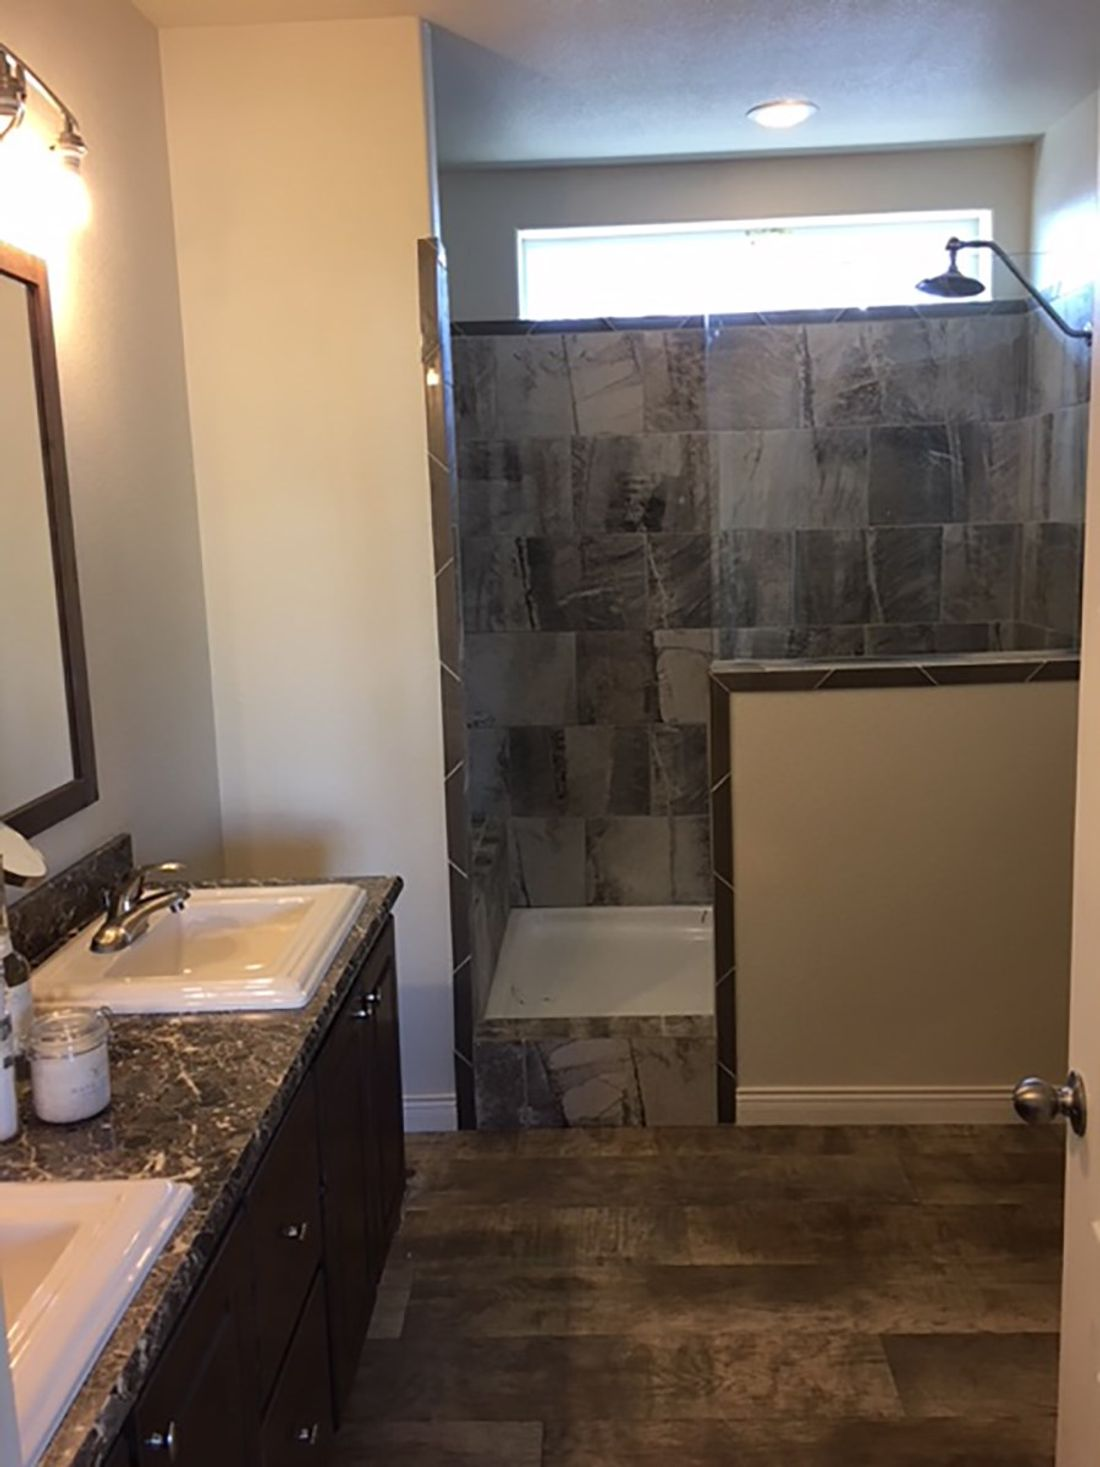 The 2024 COLUMBIA RIVER Master Bathroom. This Manufactured Mobile Home features 3 bedrooms and 2 baths.